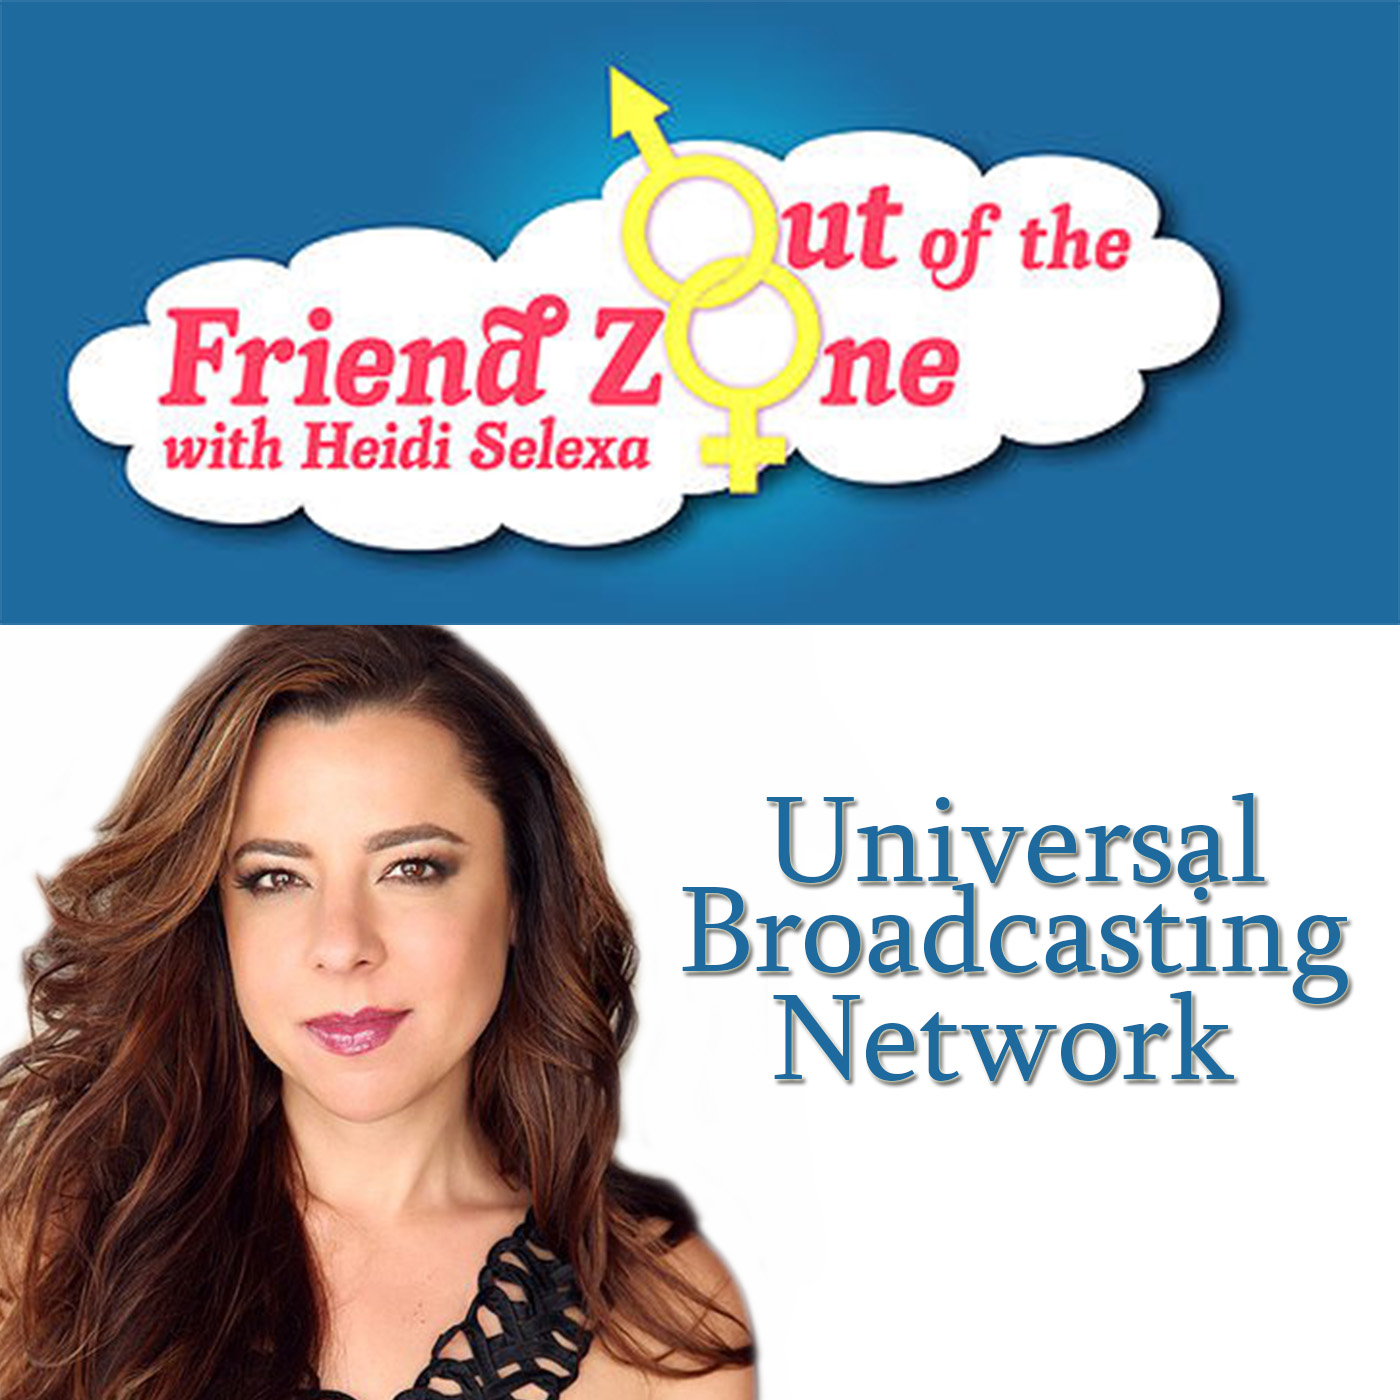 <![CDATA[Out of the Friend Zone with Heidi Selexa]]>